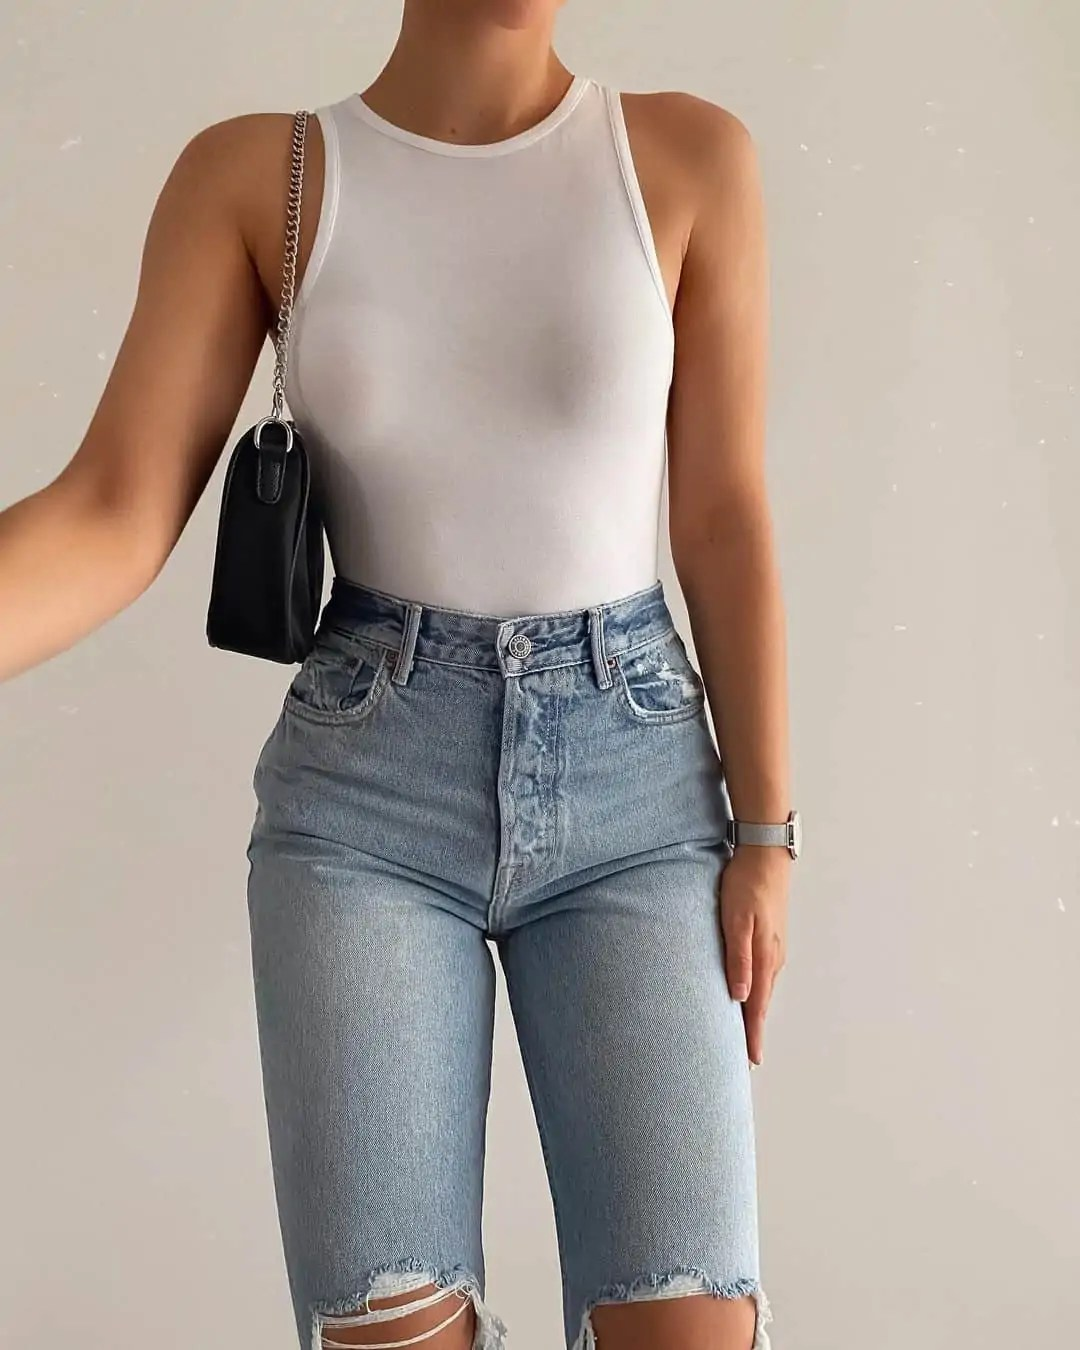 100+ Outfits to Inspire your next shopping haul 143